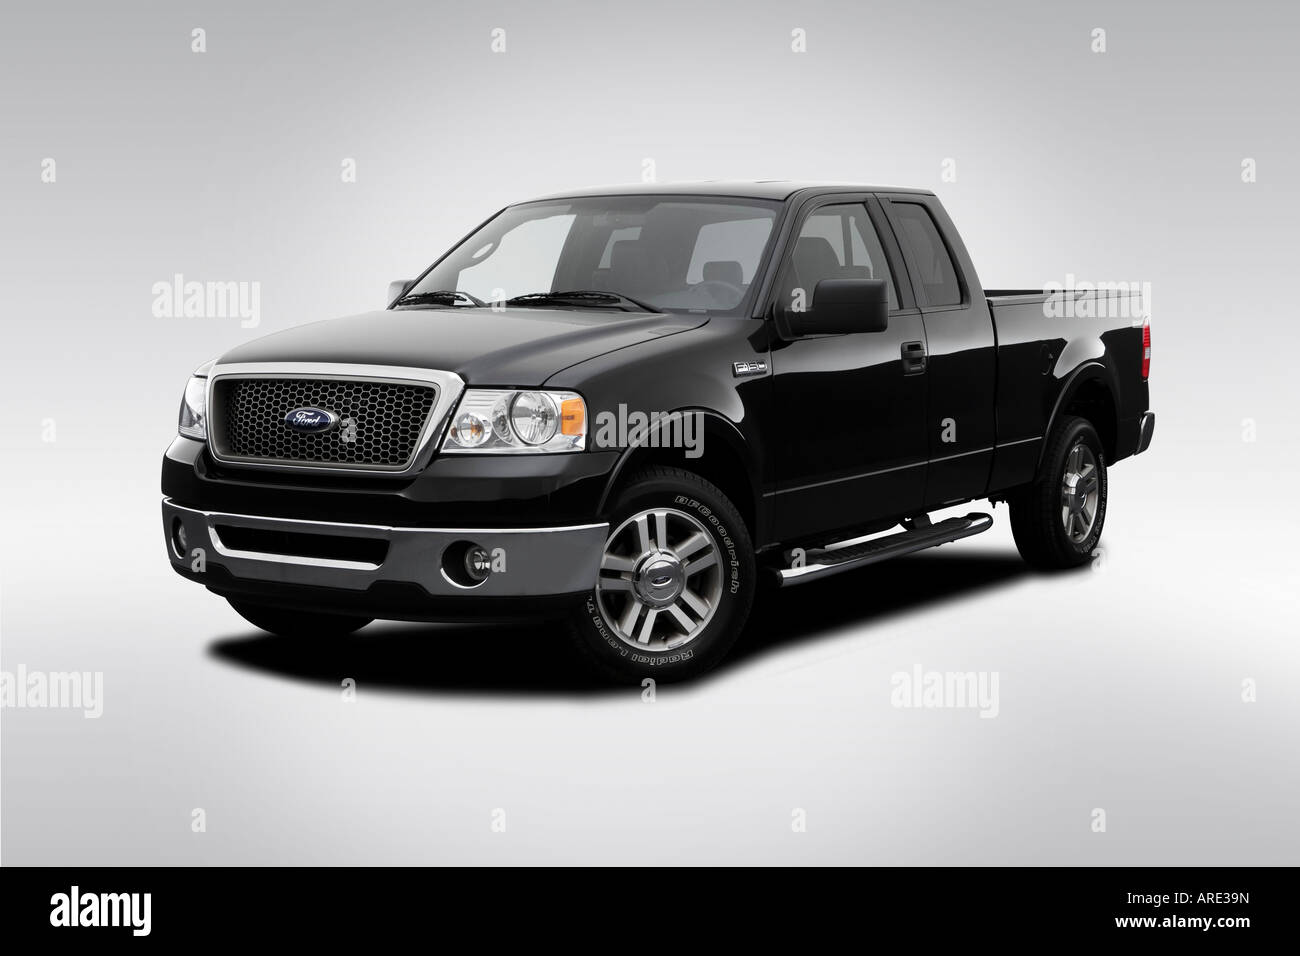 Ford ford 2006 f150 : 2006 Ford F-150 Lariat in Black - Front angle view Stock Photo ...